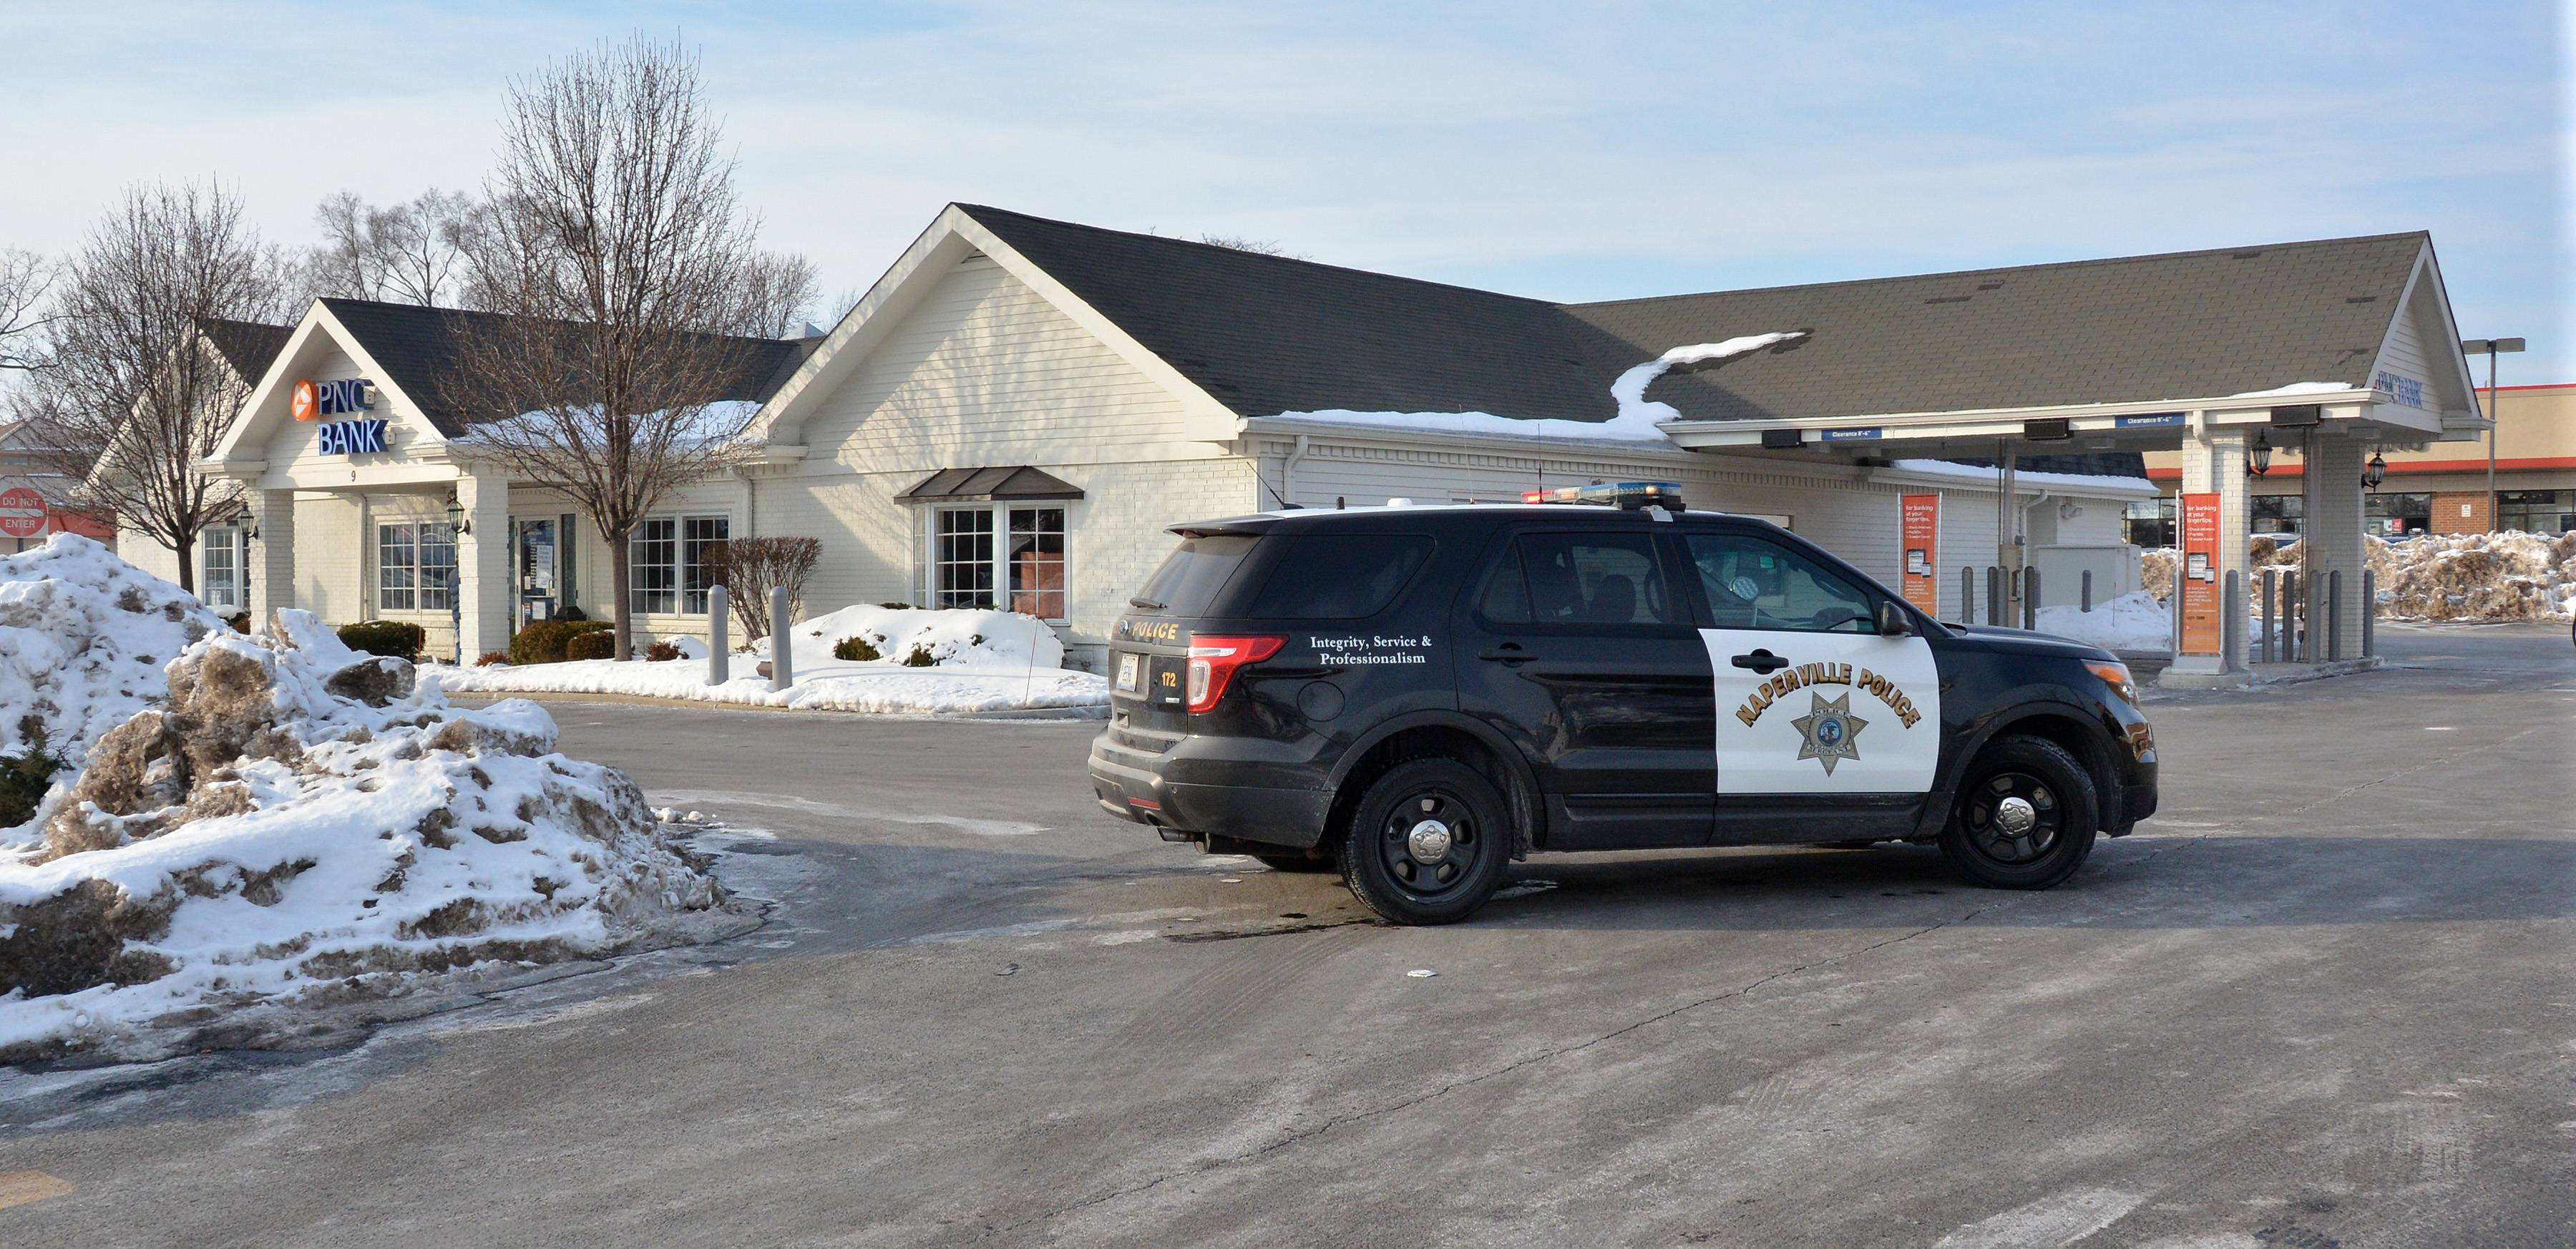 One in custody after Naperville bank robbery